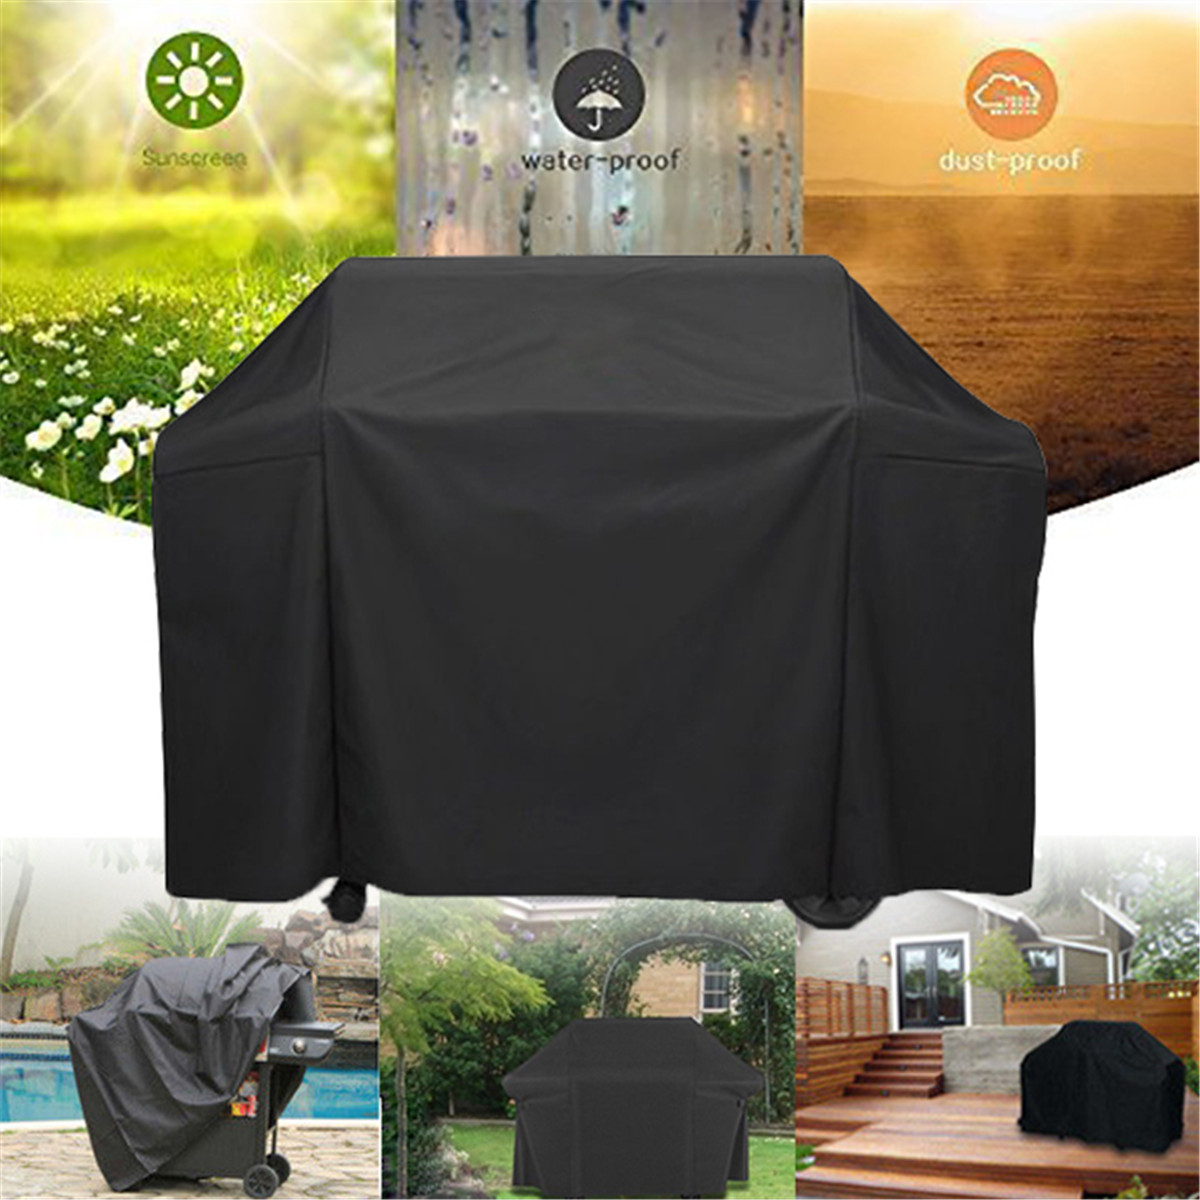 Polyester Barbeque BBQ Grill Cover with Storage Bag for Weber 7131 Genesis II Gas Grills Black Camping BBQ Tools AccessoriesPolyester Barbeque BBQ Grill Cover with Storage Bag for Weber 7131 Genesis II Gas Grills Black Camping BBQ Tools Accessories